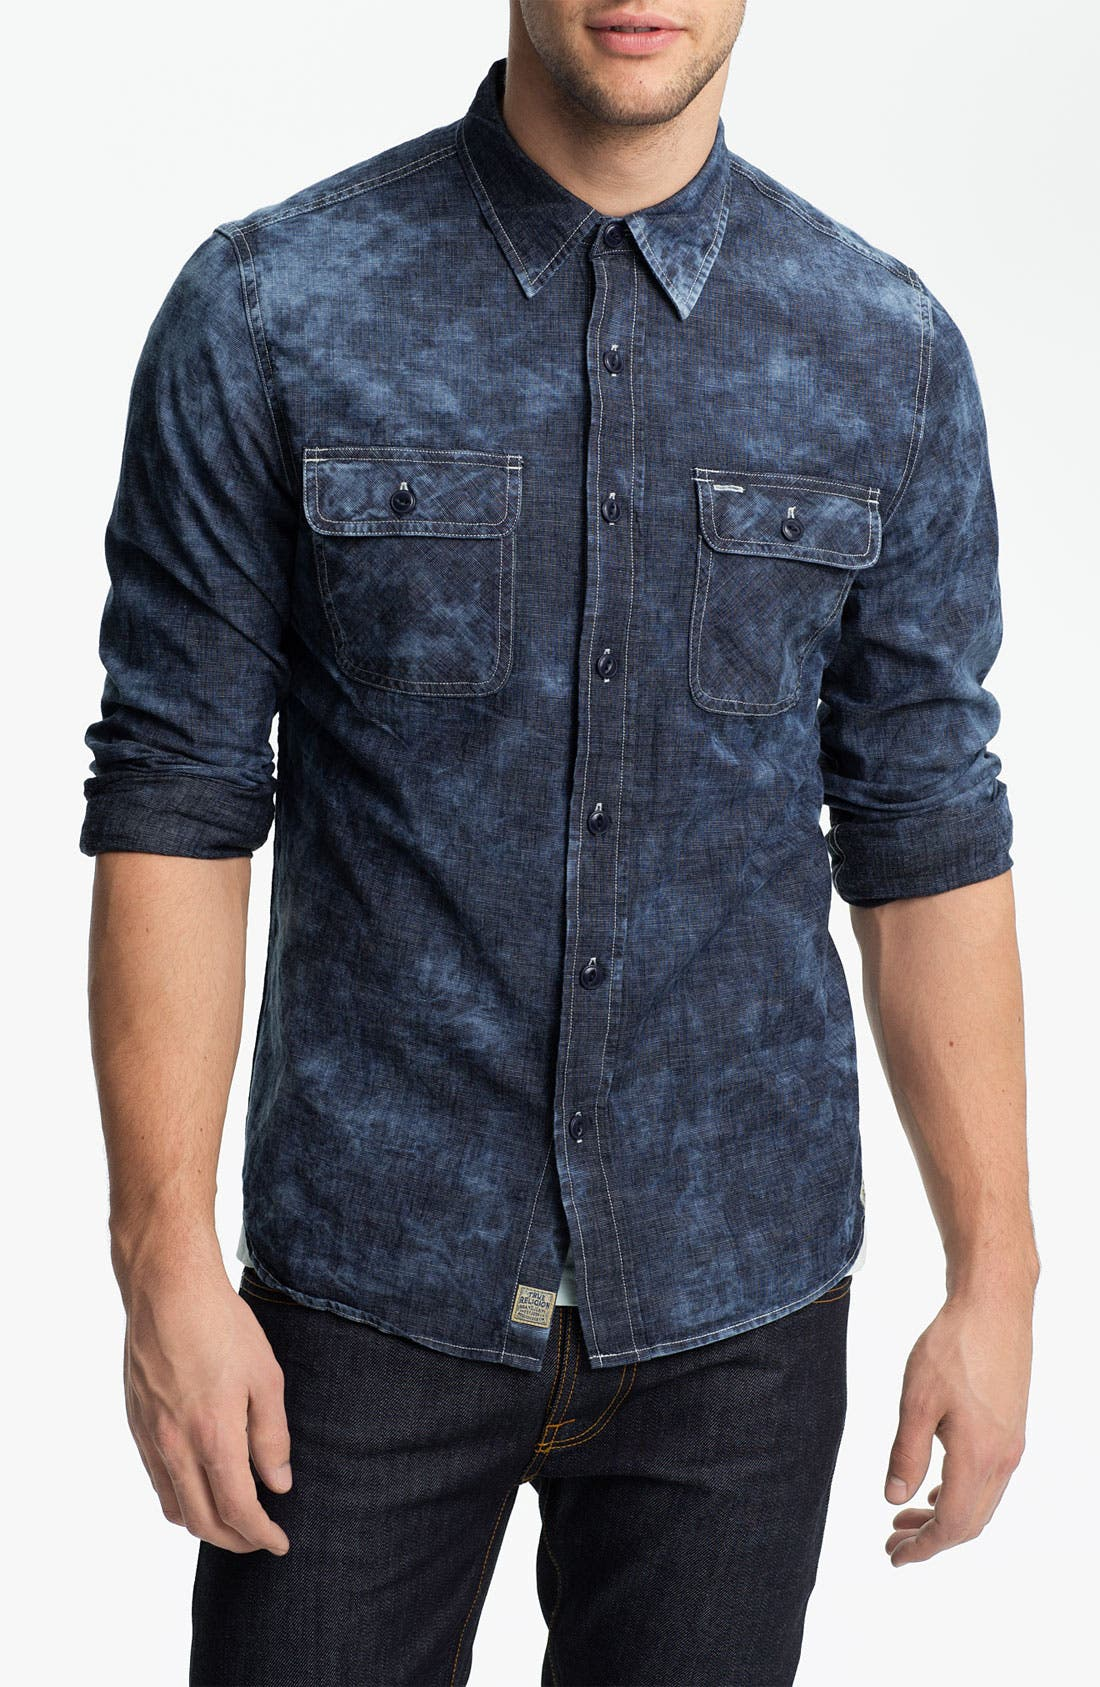 Main Image - True Religion Brand Jeans Workwear Denim Shirt